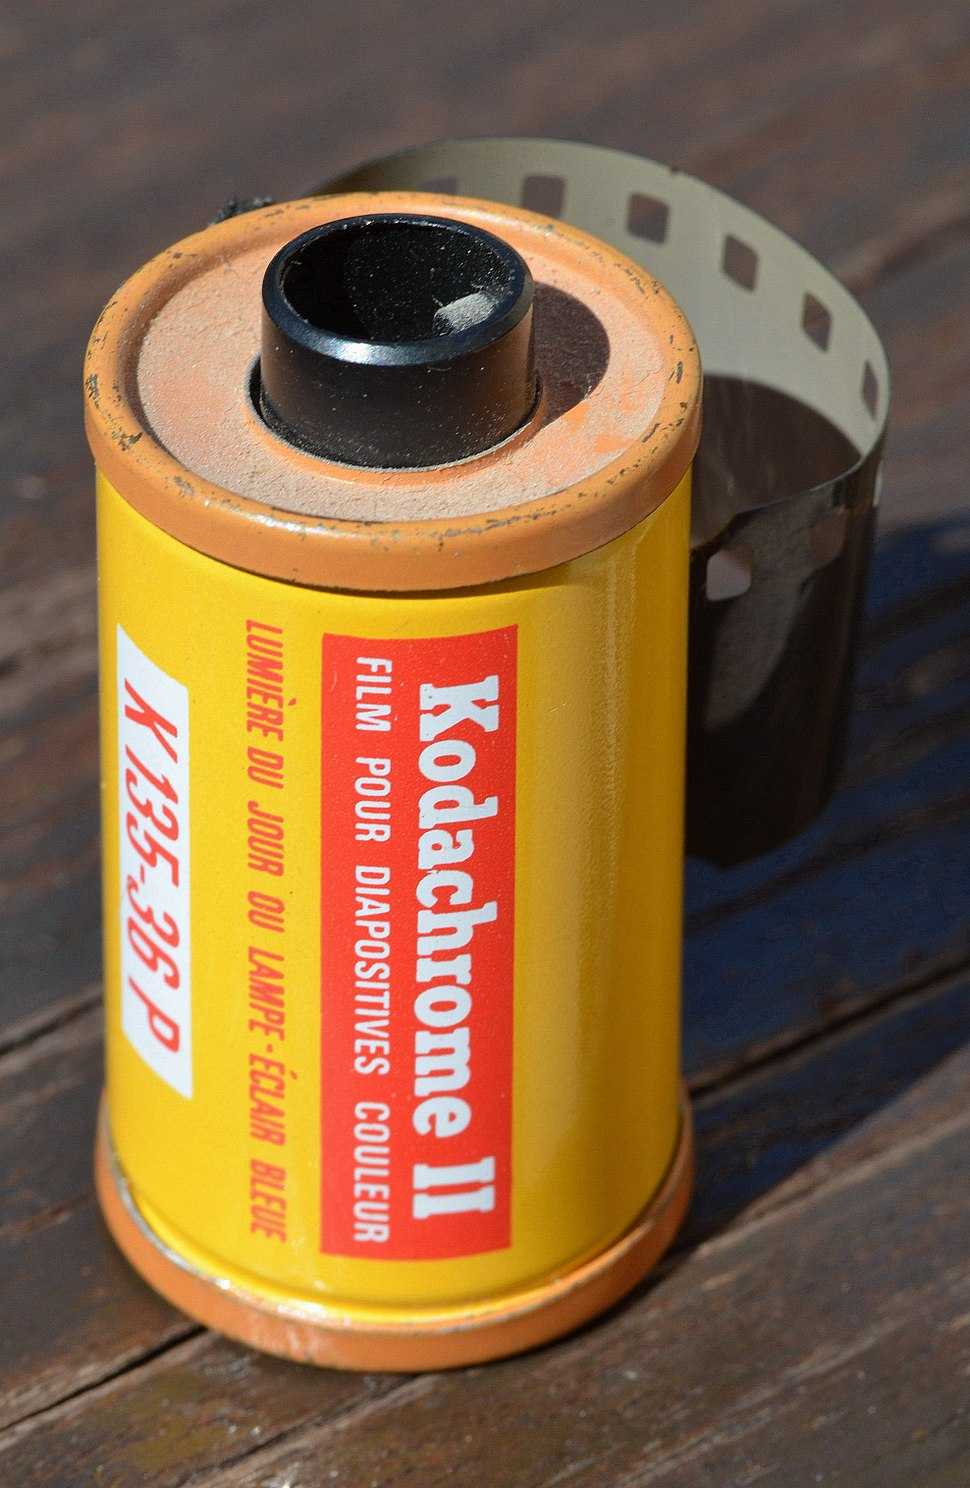 Kodachrome II - Film for colour slides